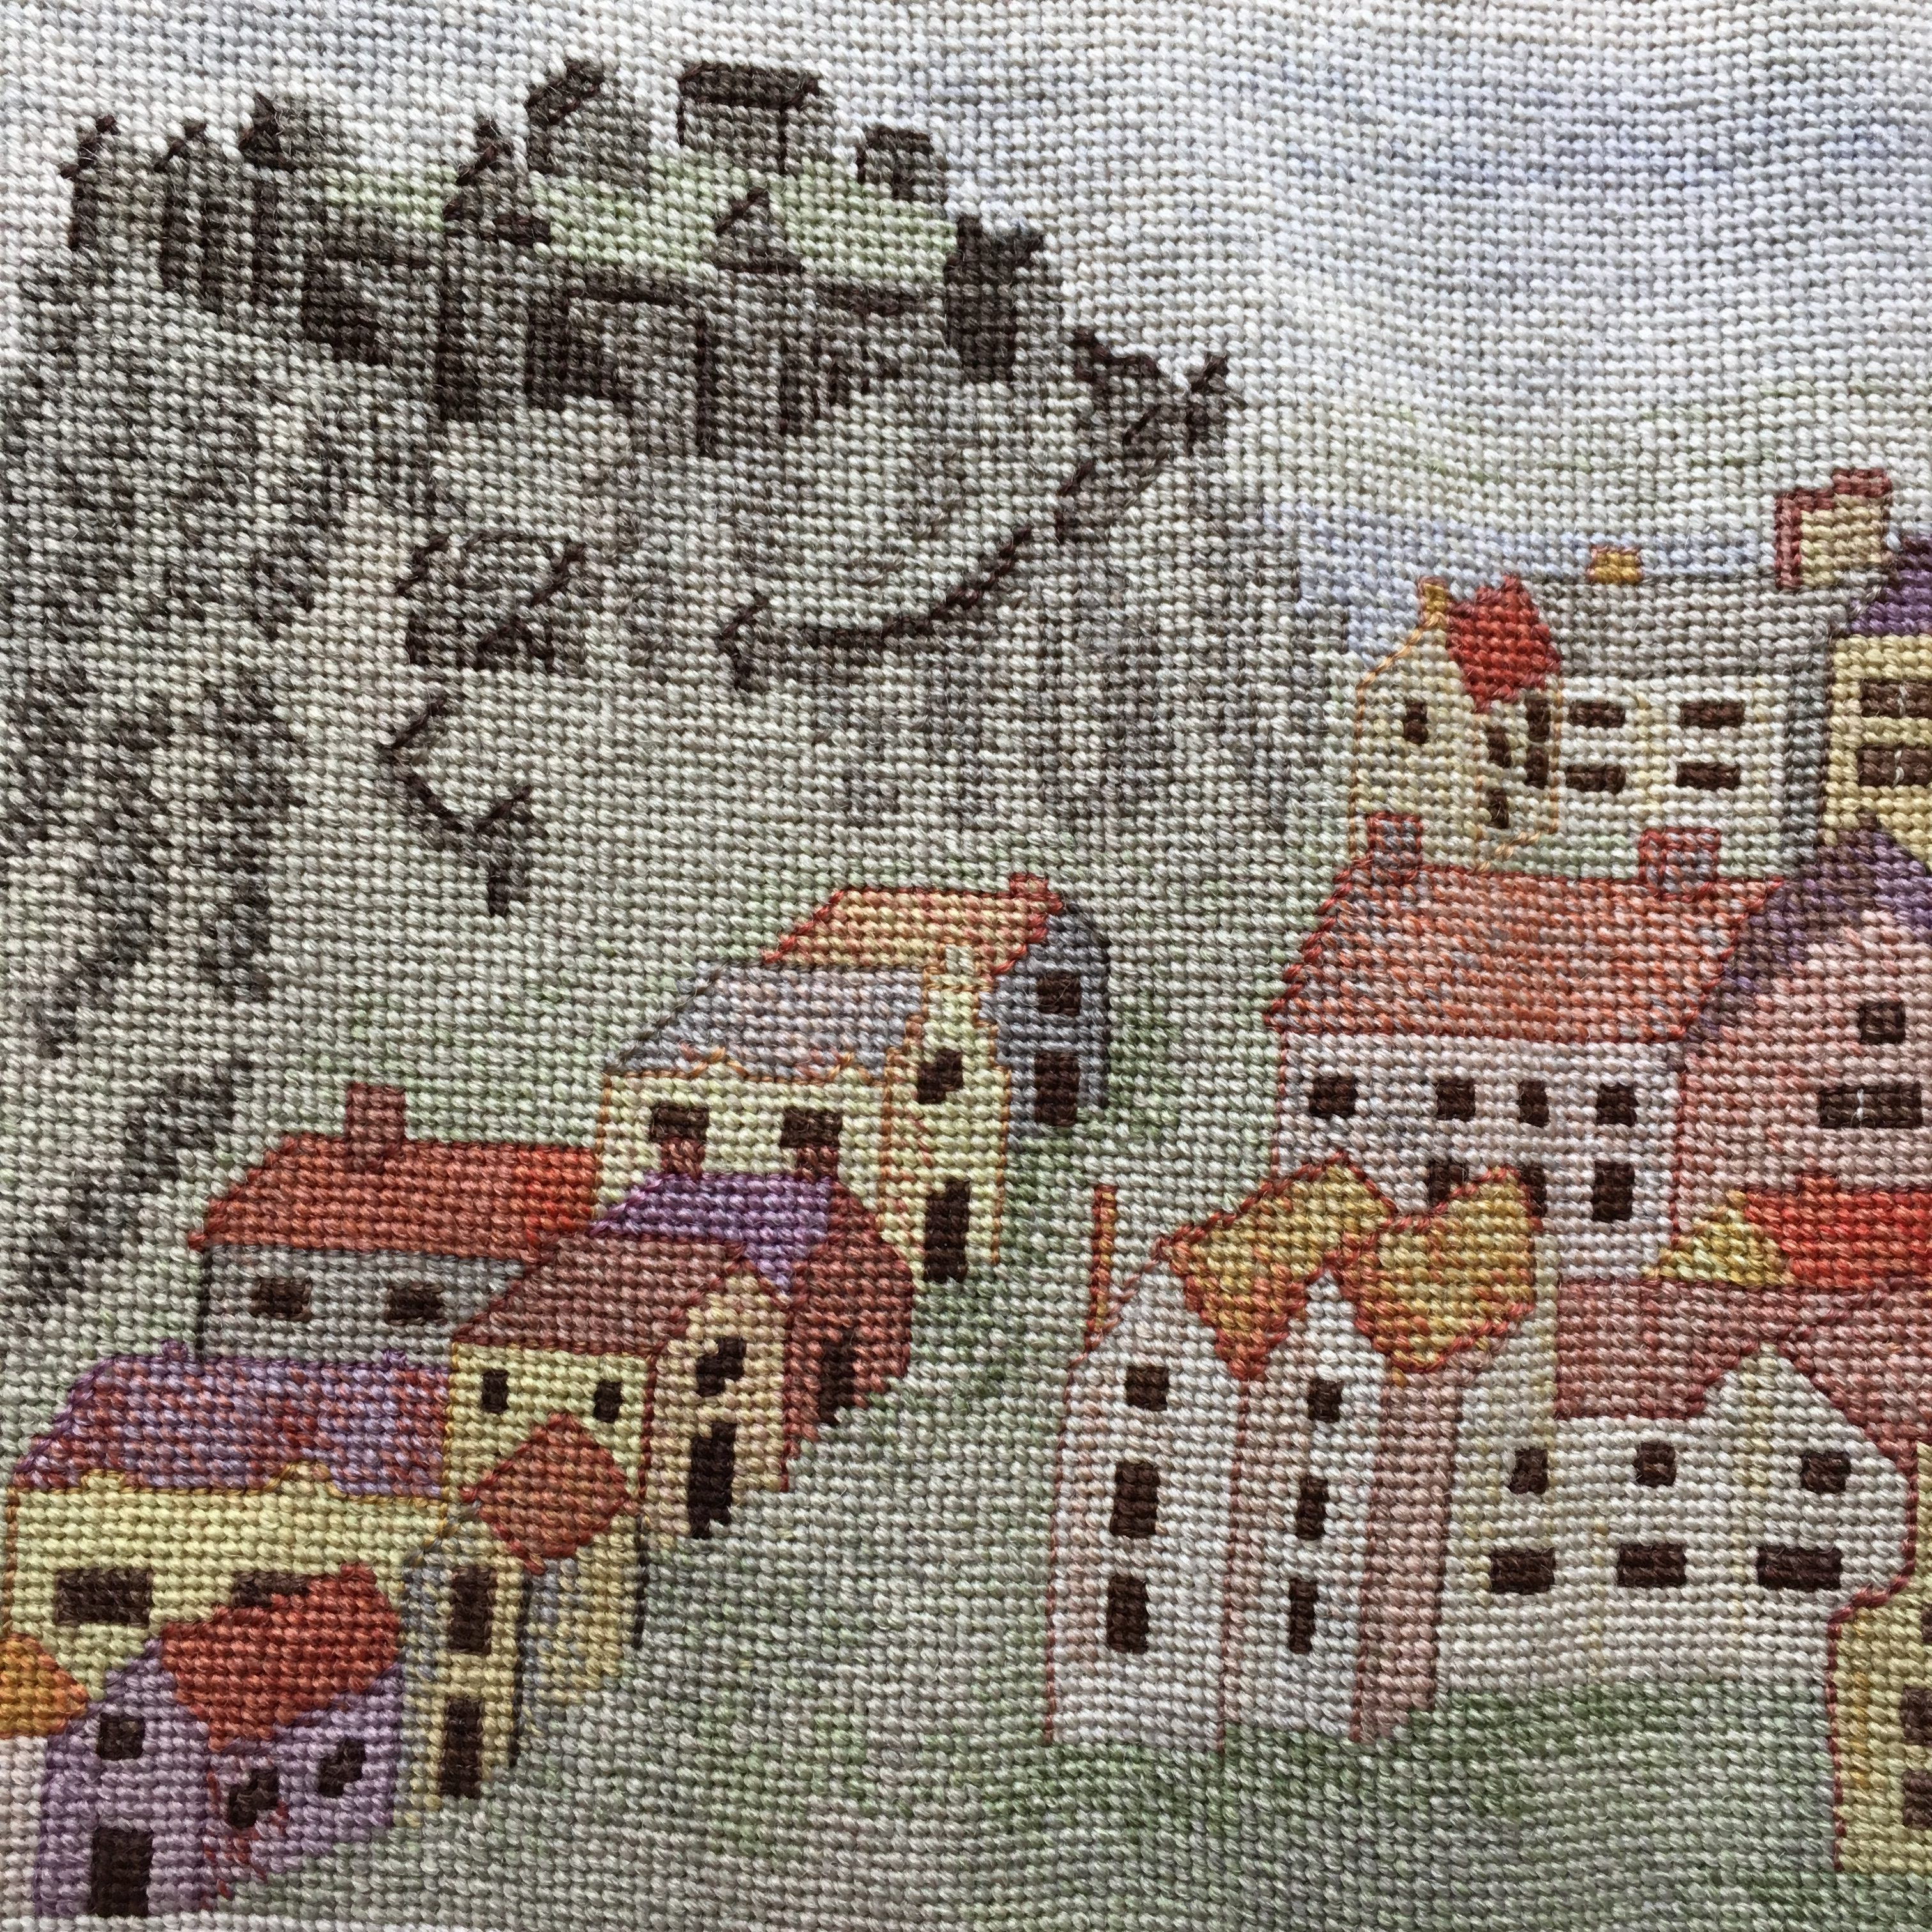 Tapestry of Edinburgh Castle and the Old Town in the Museum of Edinburgh